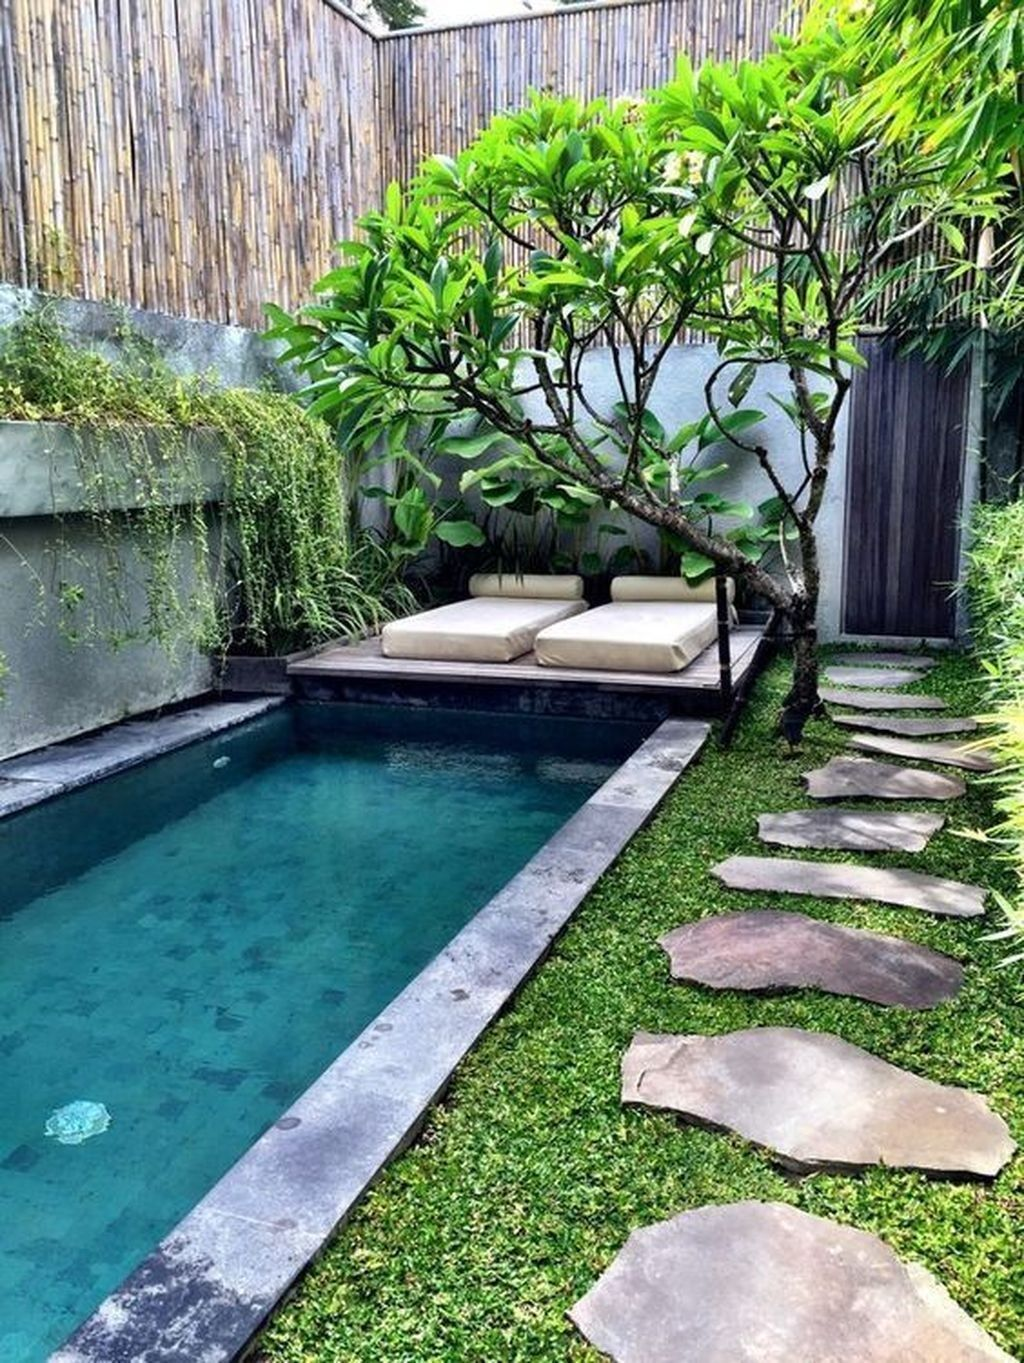 Creating Outdoor Spaces That Expand Your Home S Functional And Living Areas While Also Impr Small Backyard Design Small Pool Design Small Backyard Landscaping